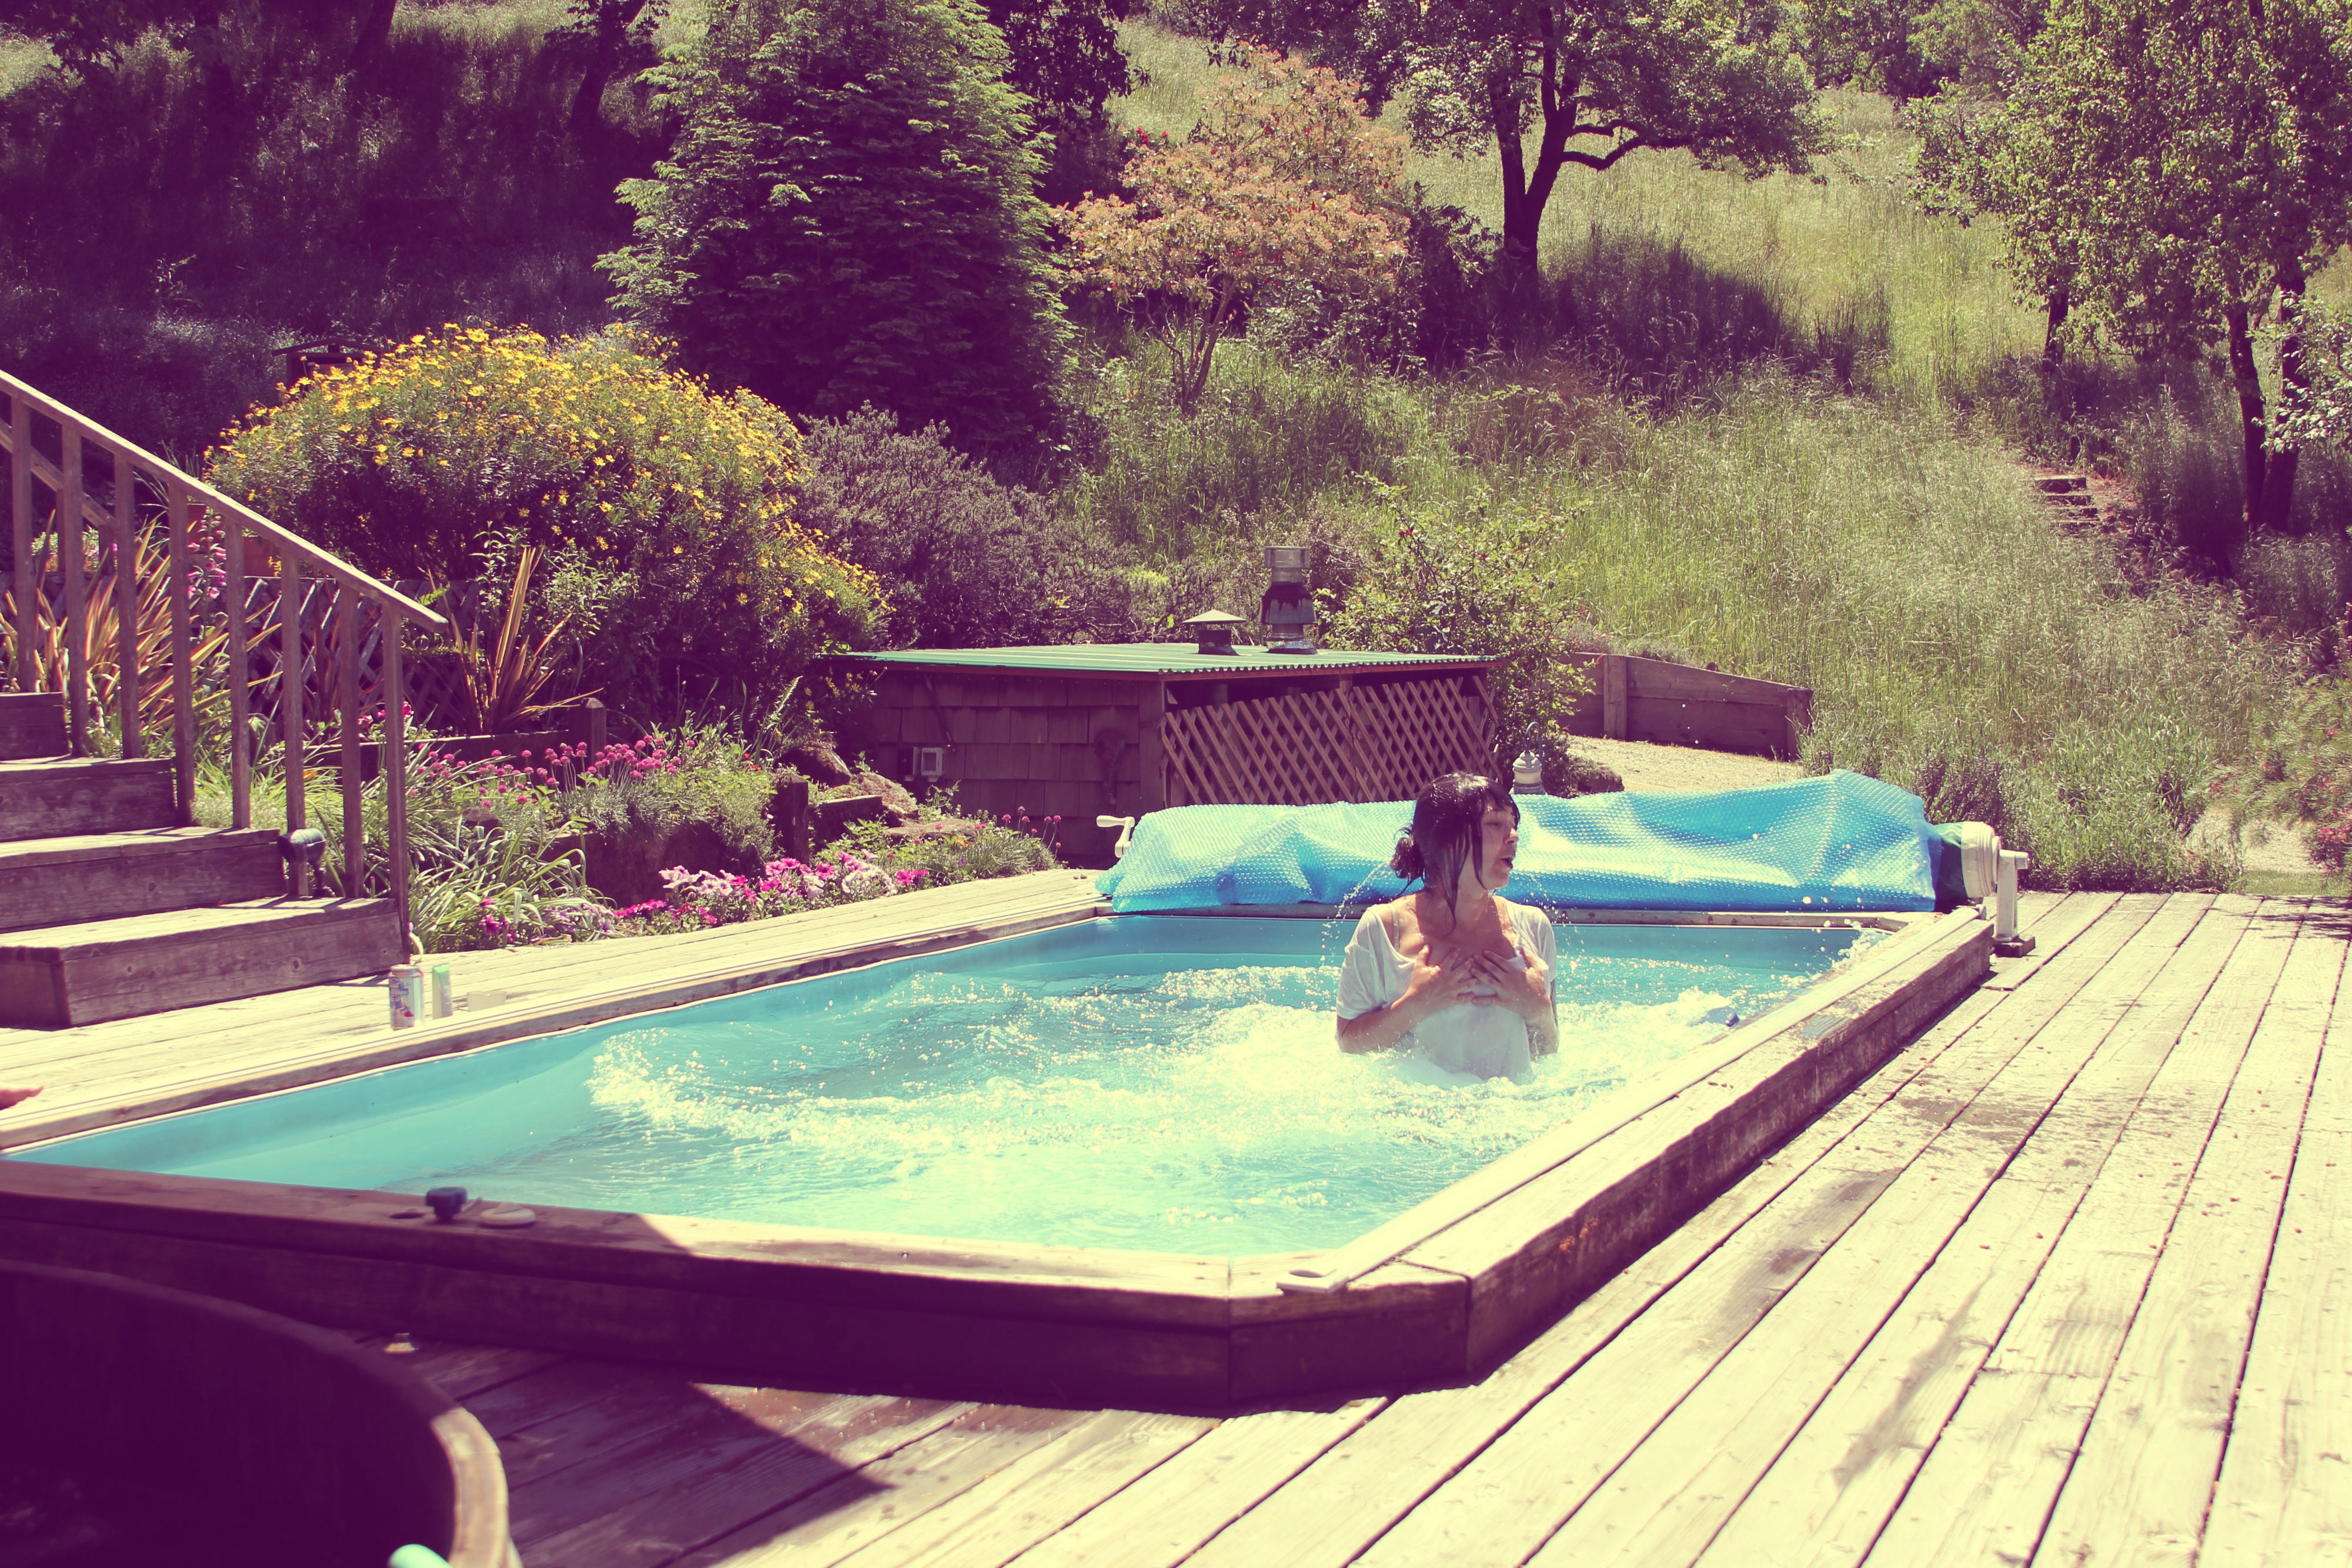 cad82b0a2f Bucket List// Jumping in a pool with all my clothes on - oh shoot